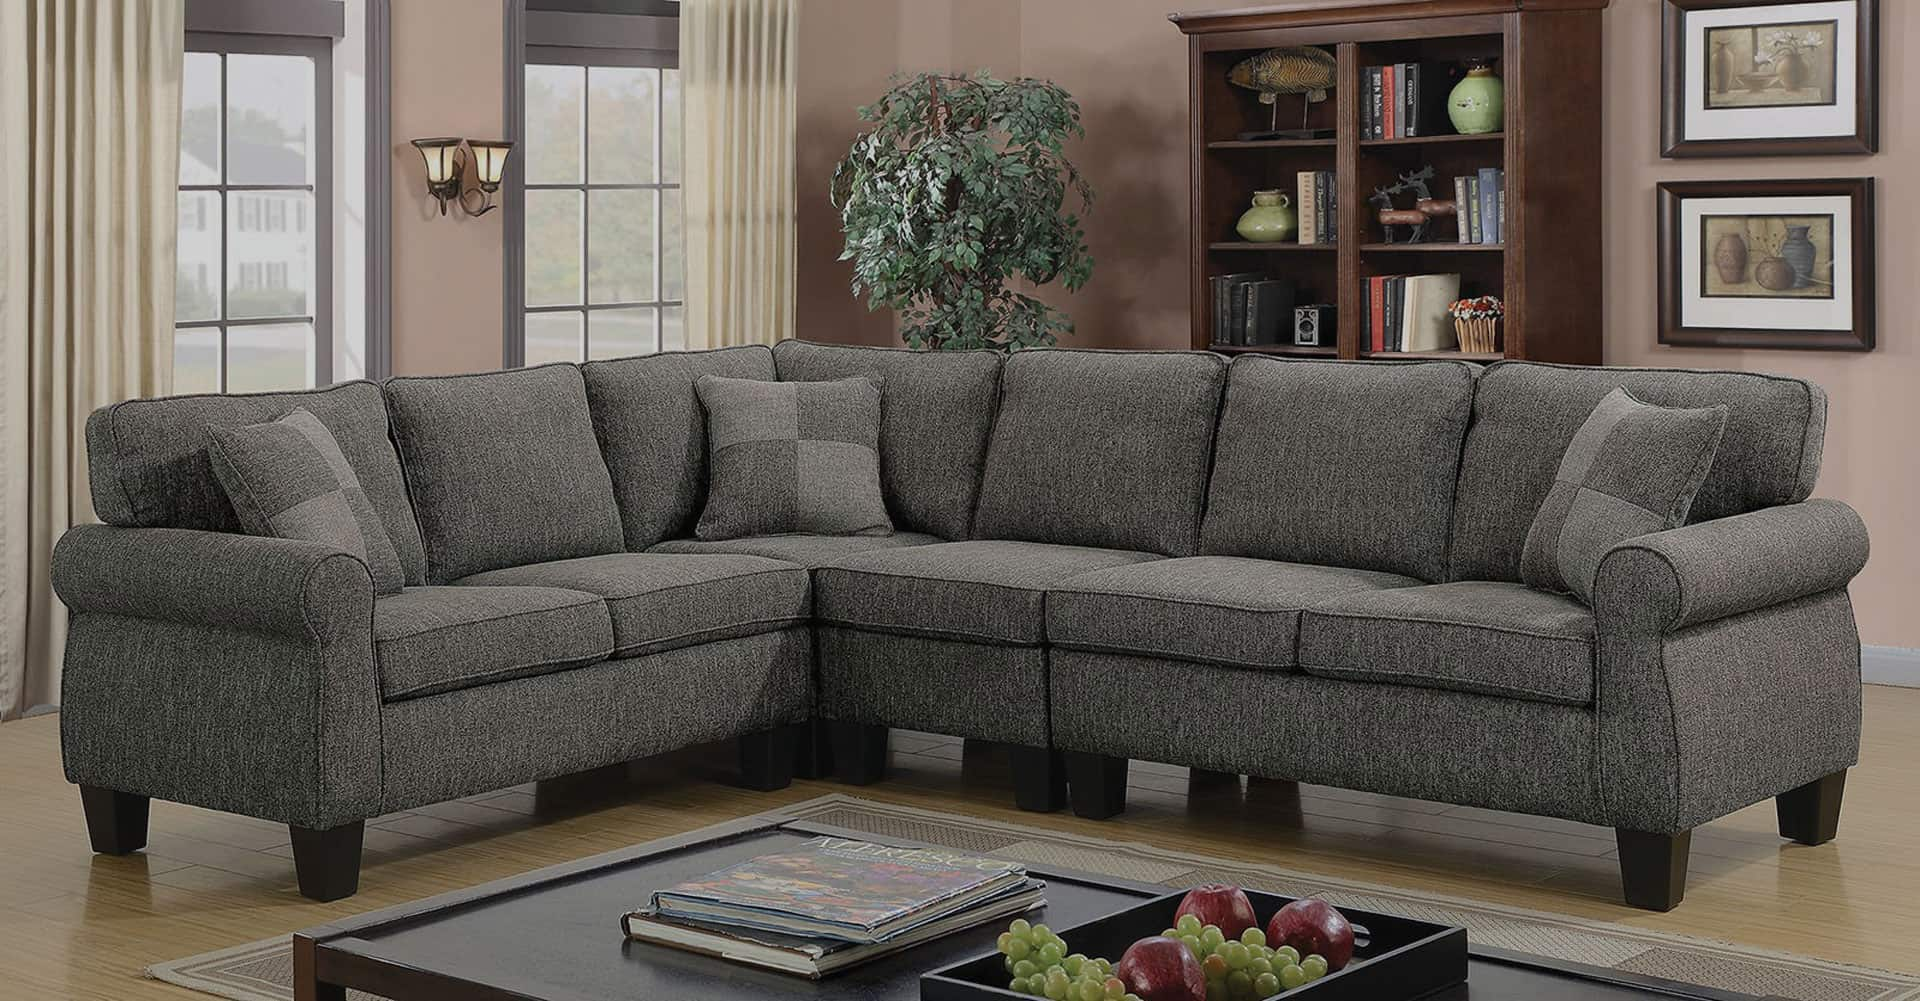 Sectional Sofa Home